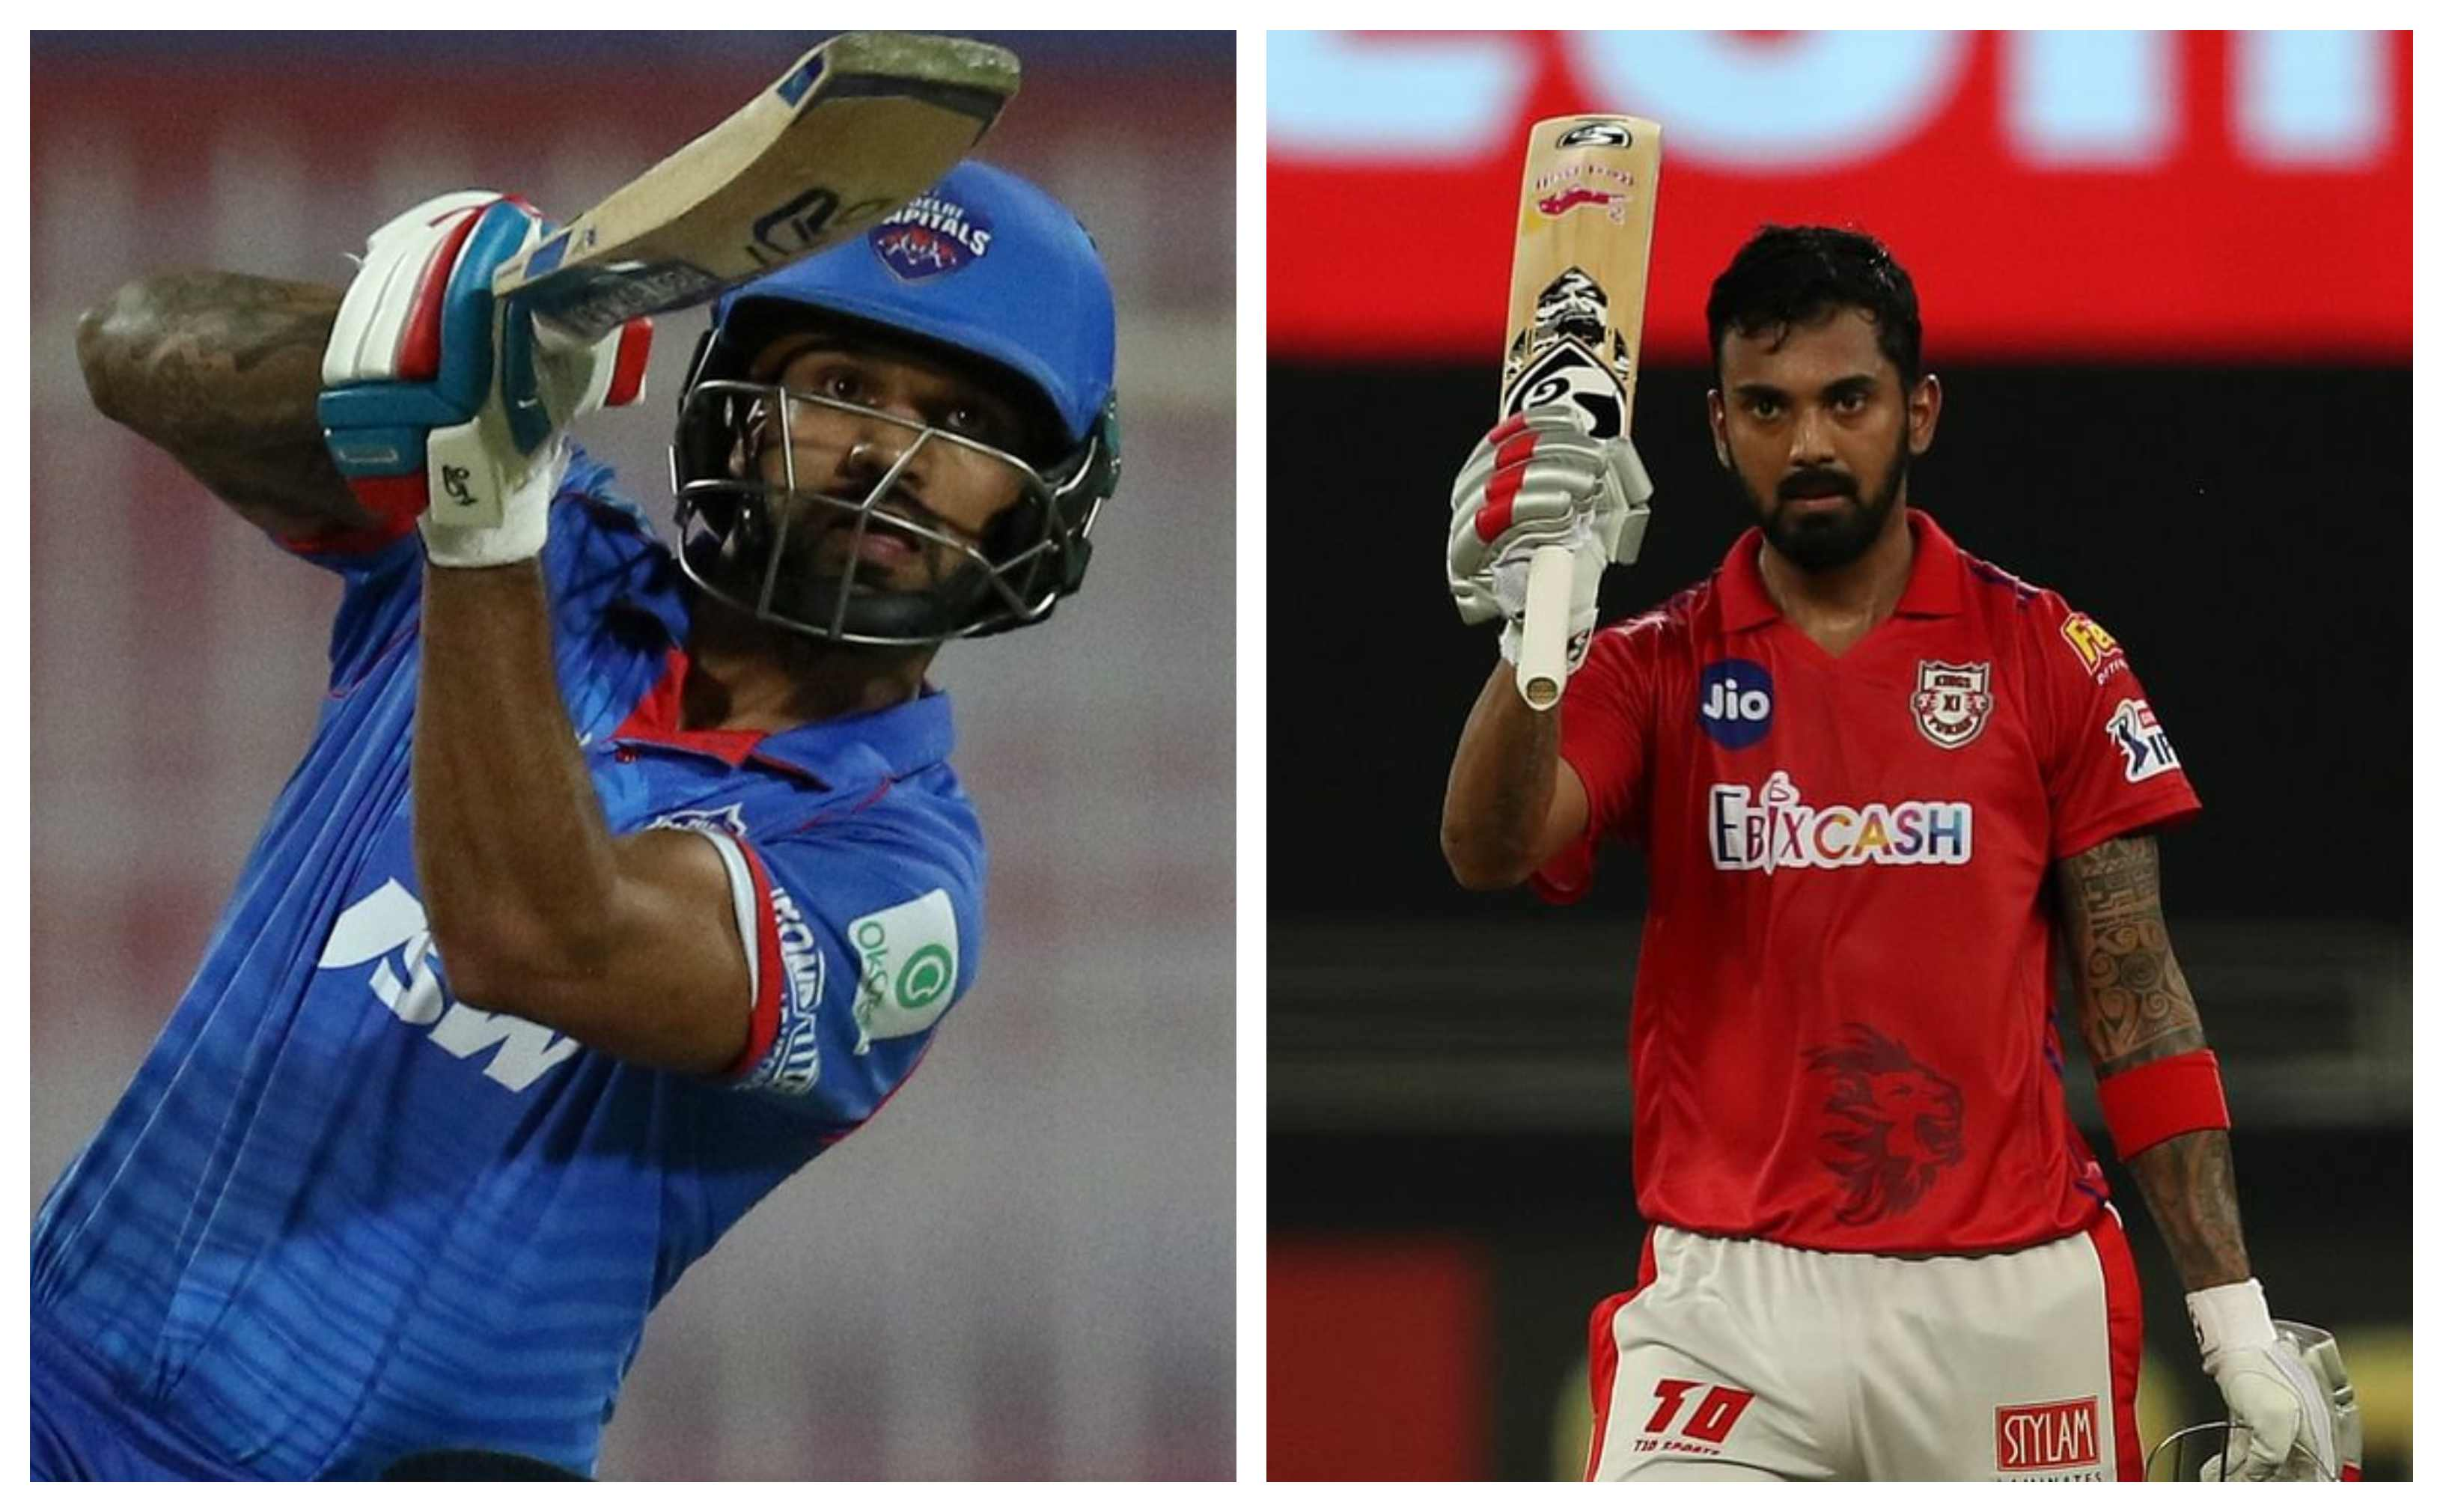 Moody picked Dhawan and Rahul to open the innings | IPL/BCCI